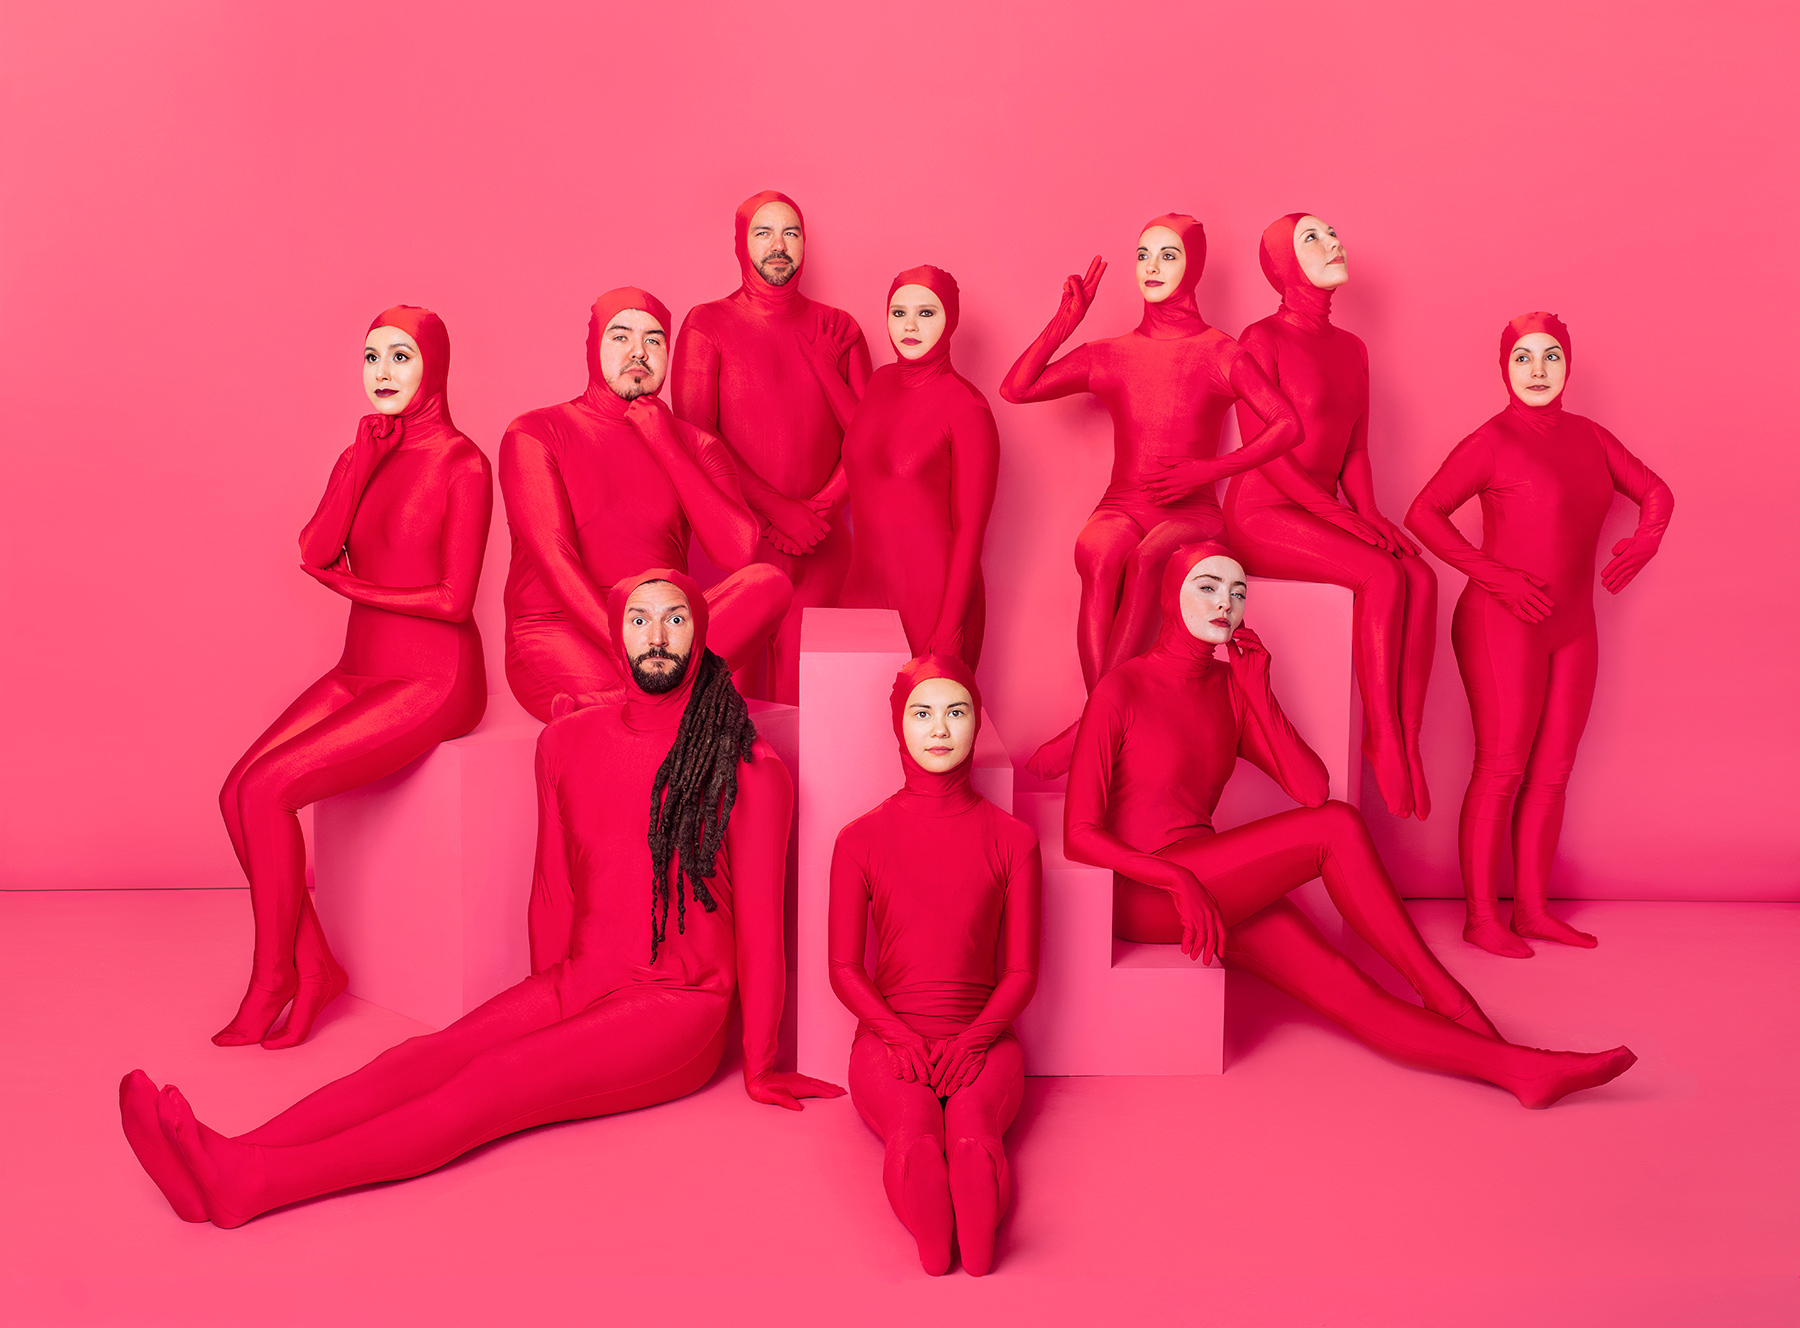 Conceptual Group Portrait of Chamoy Creative by Advertising Photographer Josh huskin